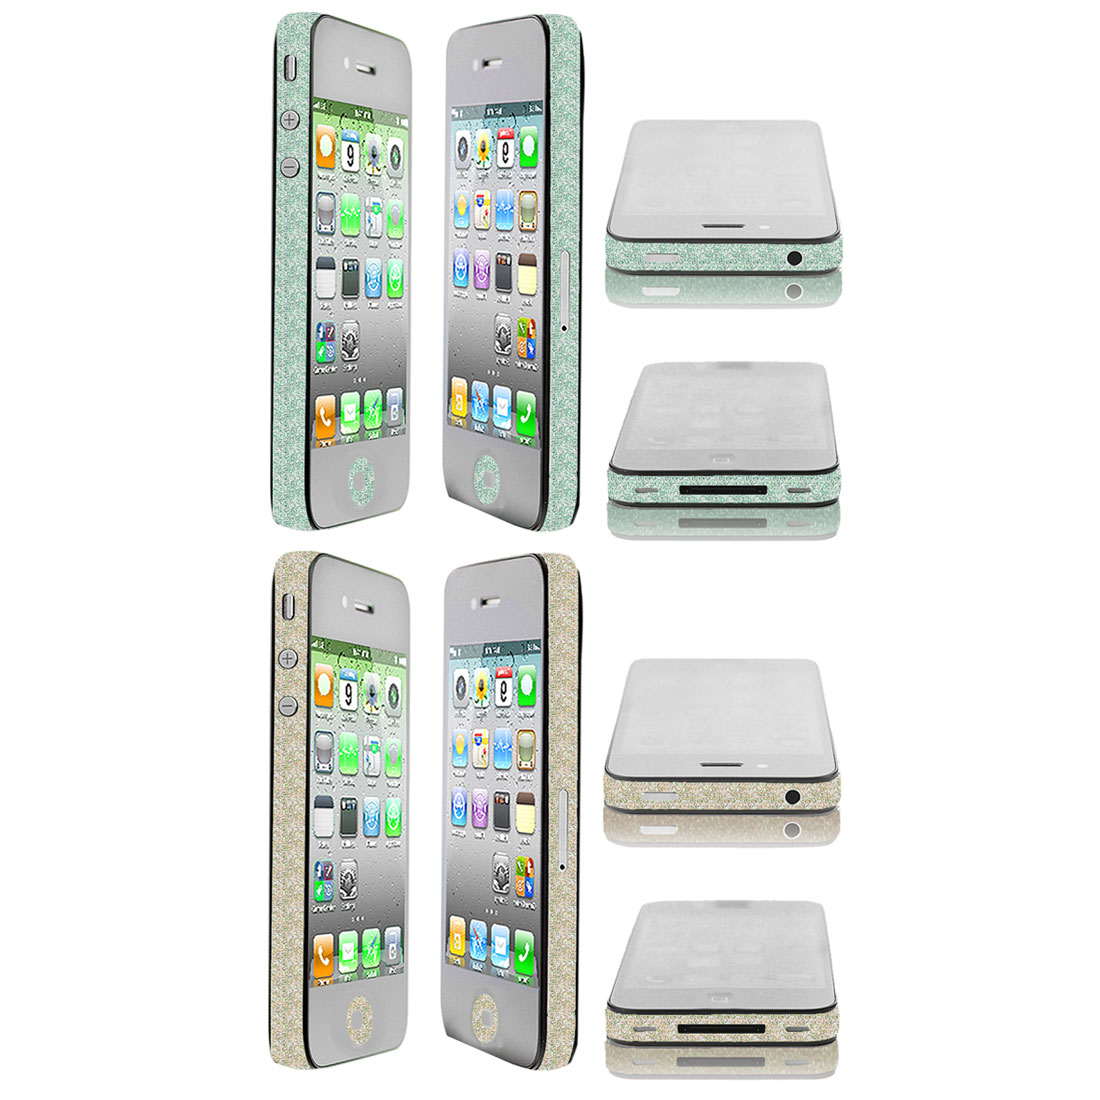 2 Pcs Bling Edge Wrap Decal Button Sticker Light Yellow Green for iPhone 4 4S 4G 4GS 4th